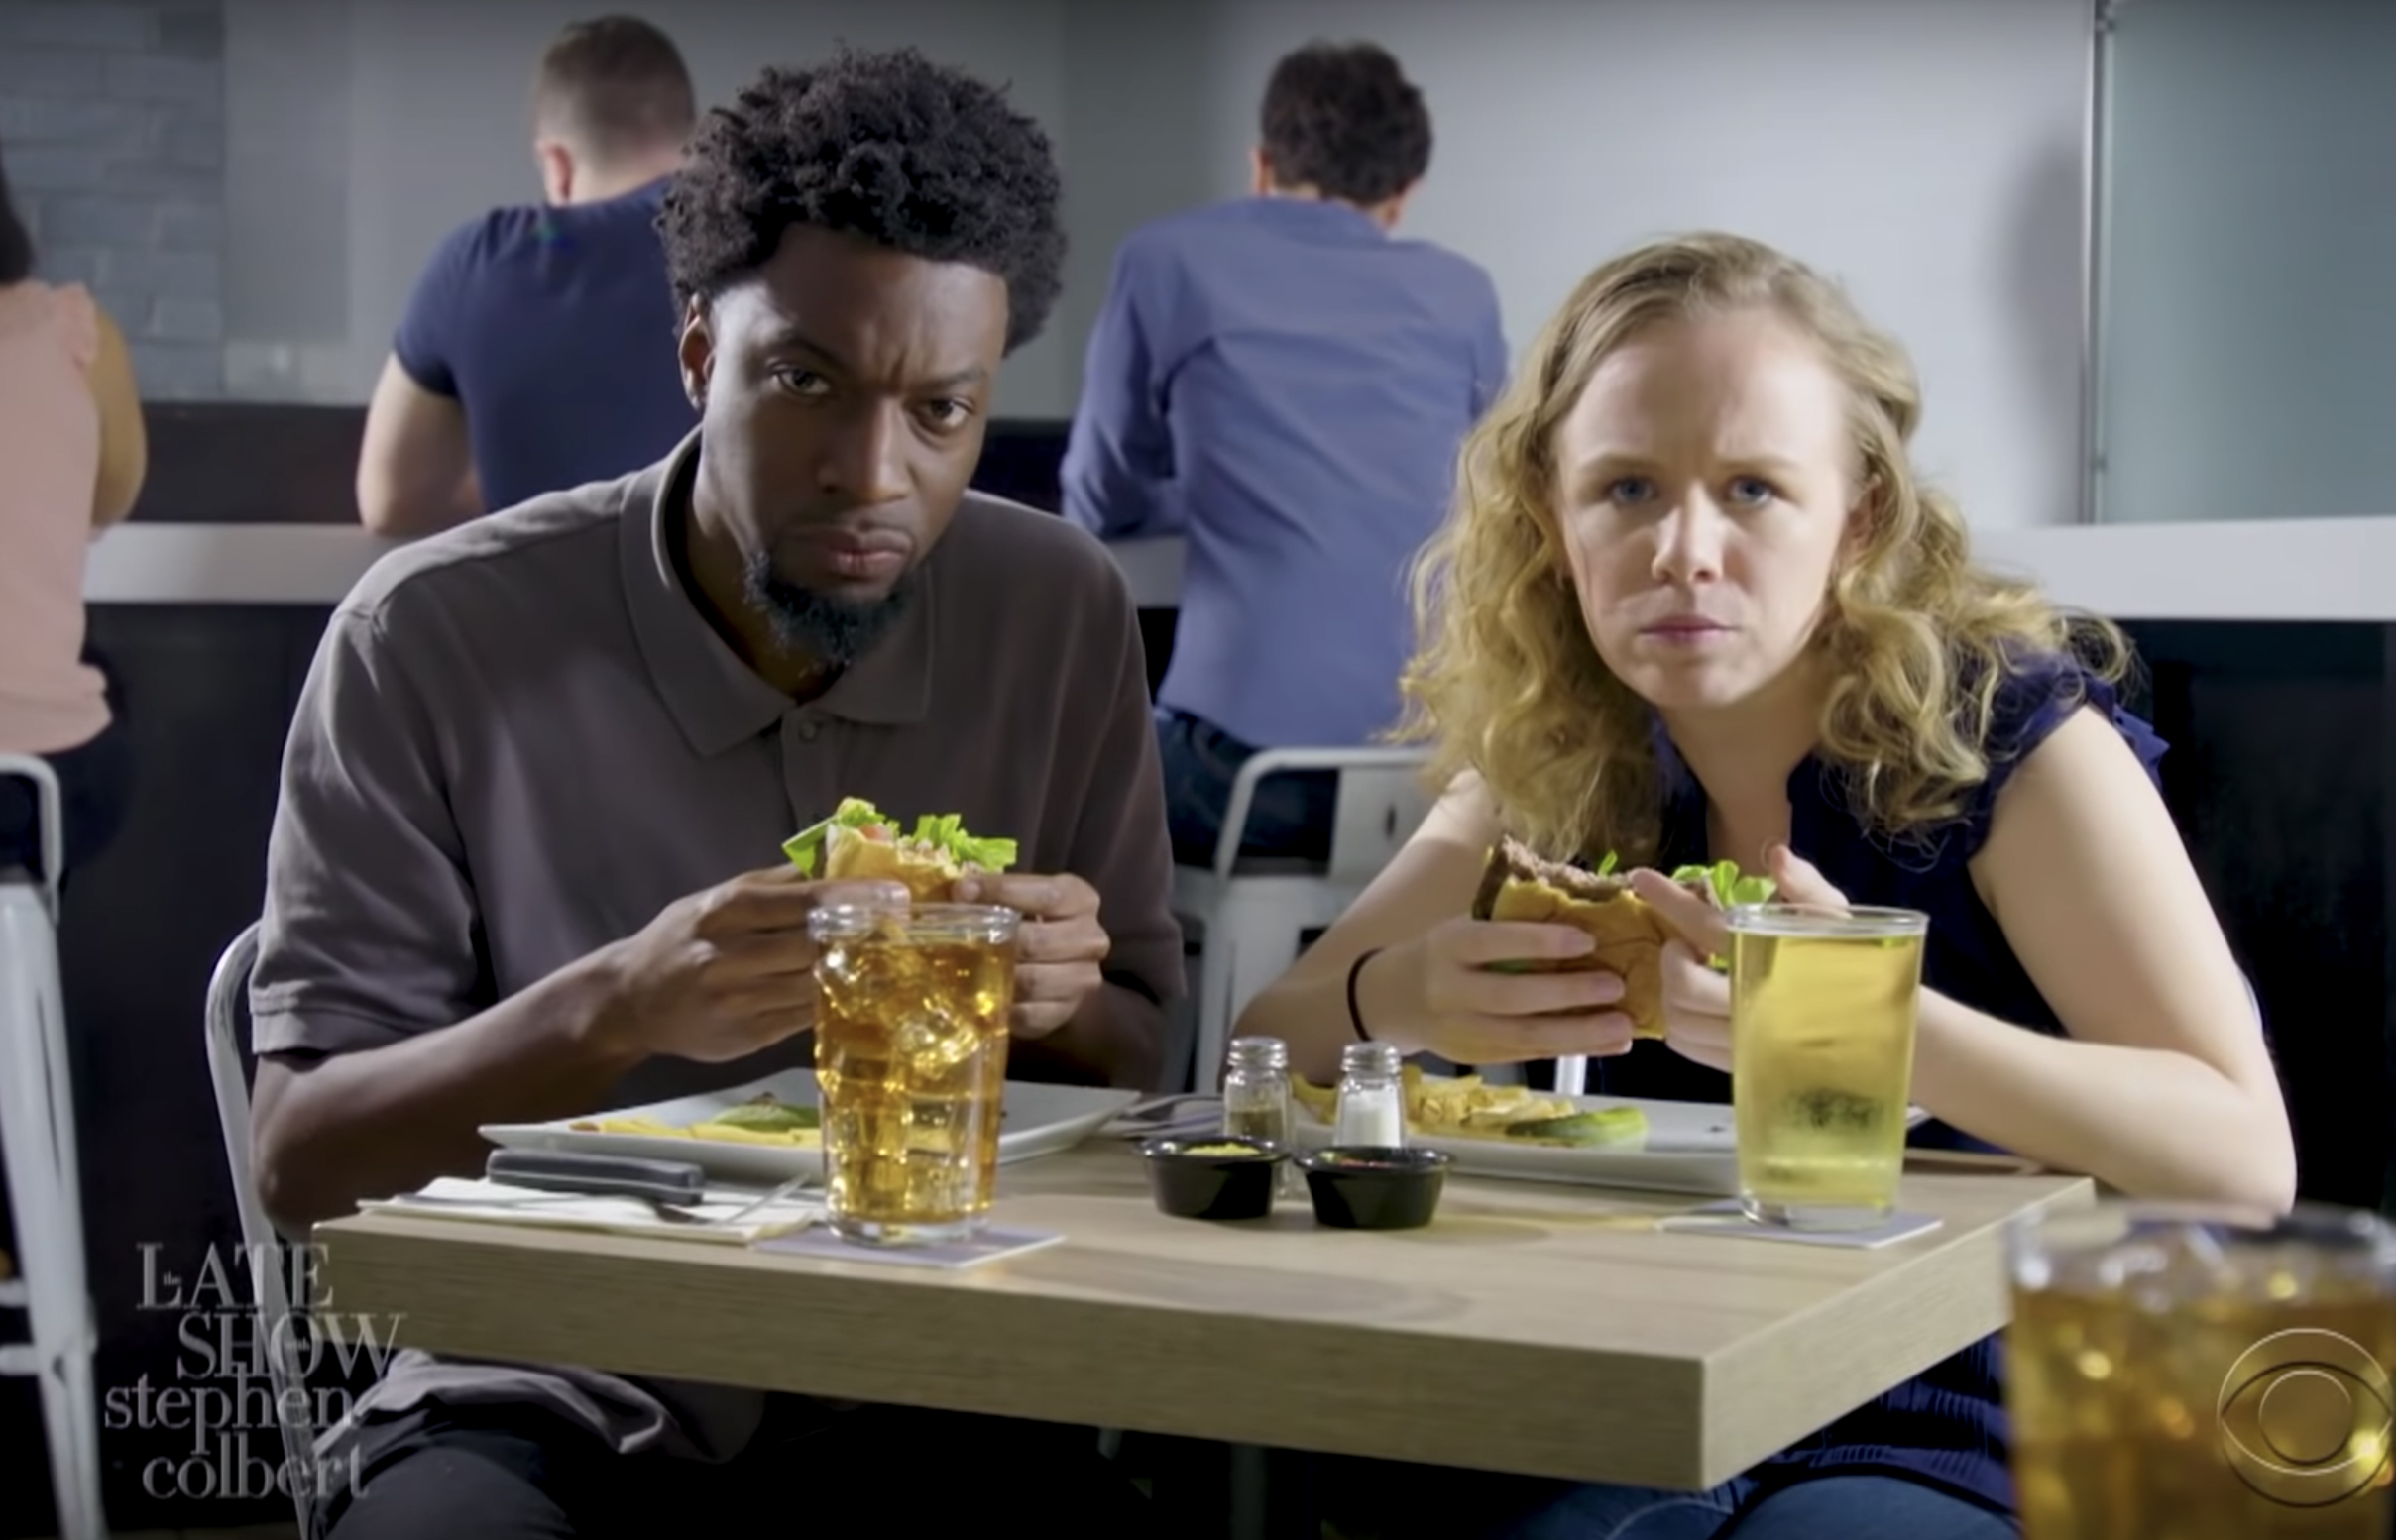 A man and a woman with cheeseburgers in hand, looking at the camera inside a trendy restaurant